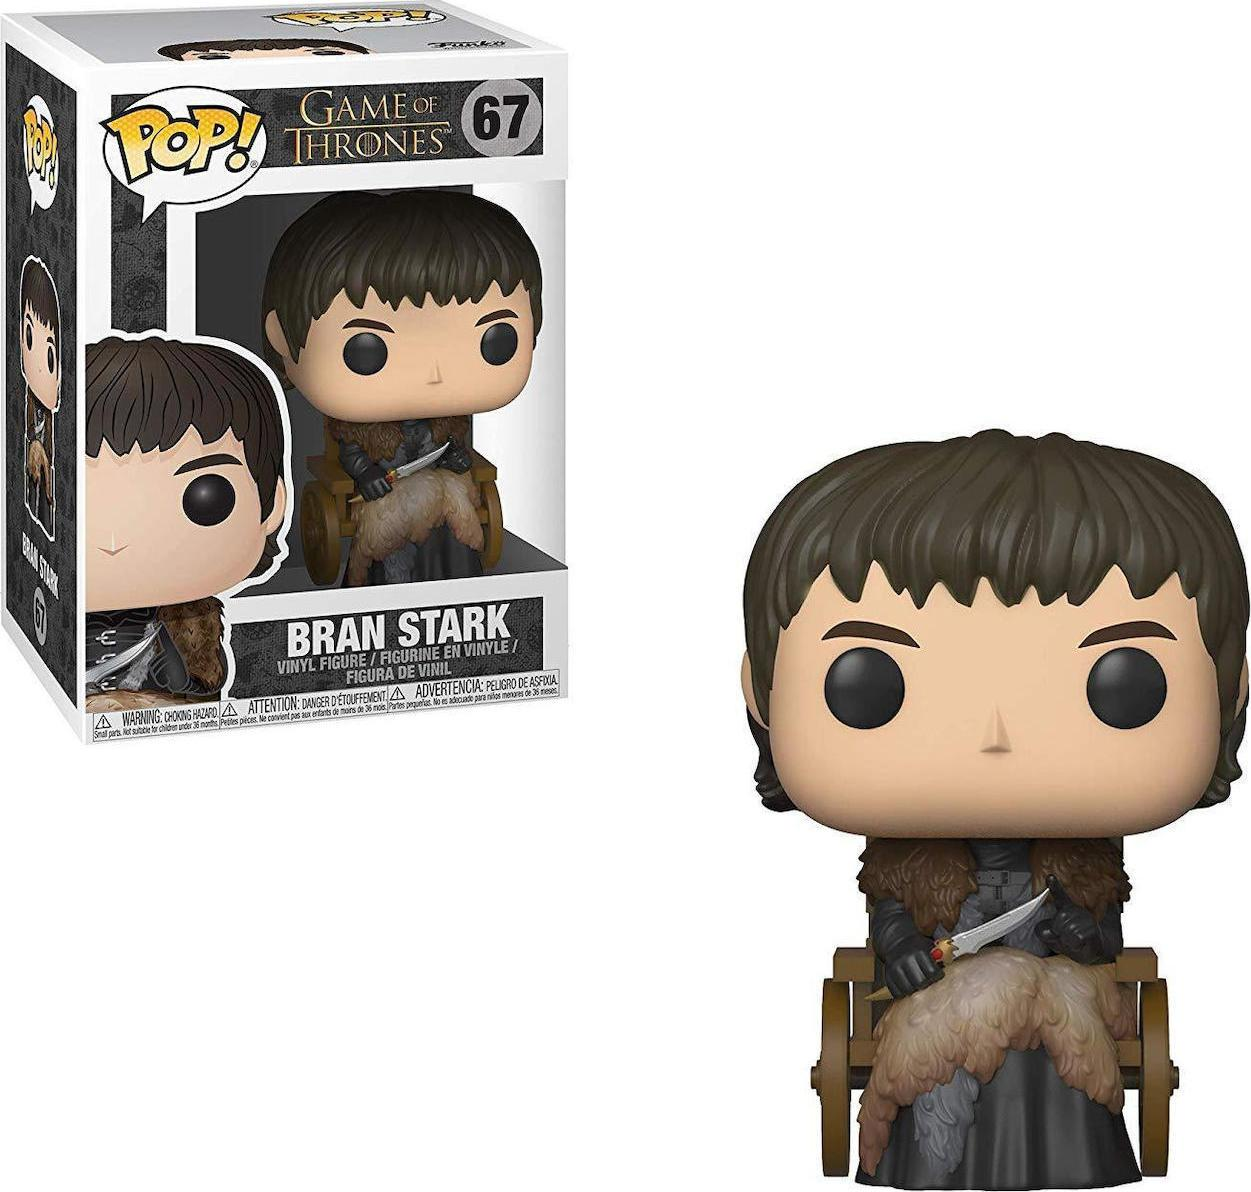 POP! Game of Thrones - Bran Stark (67) Vinyl Figure